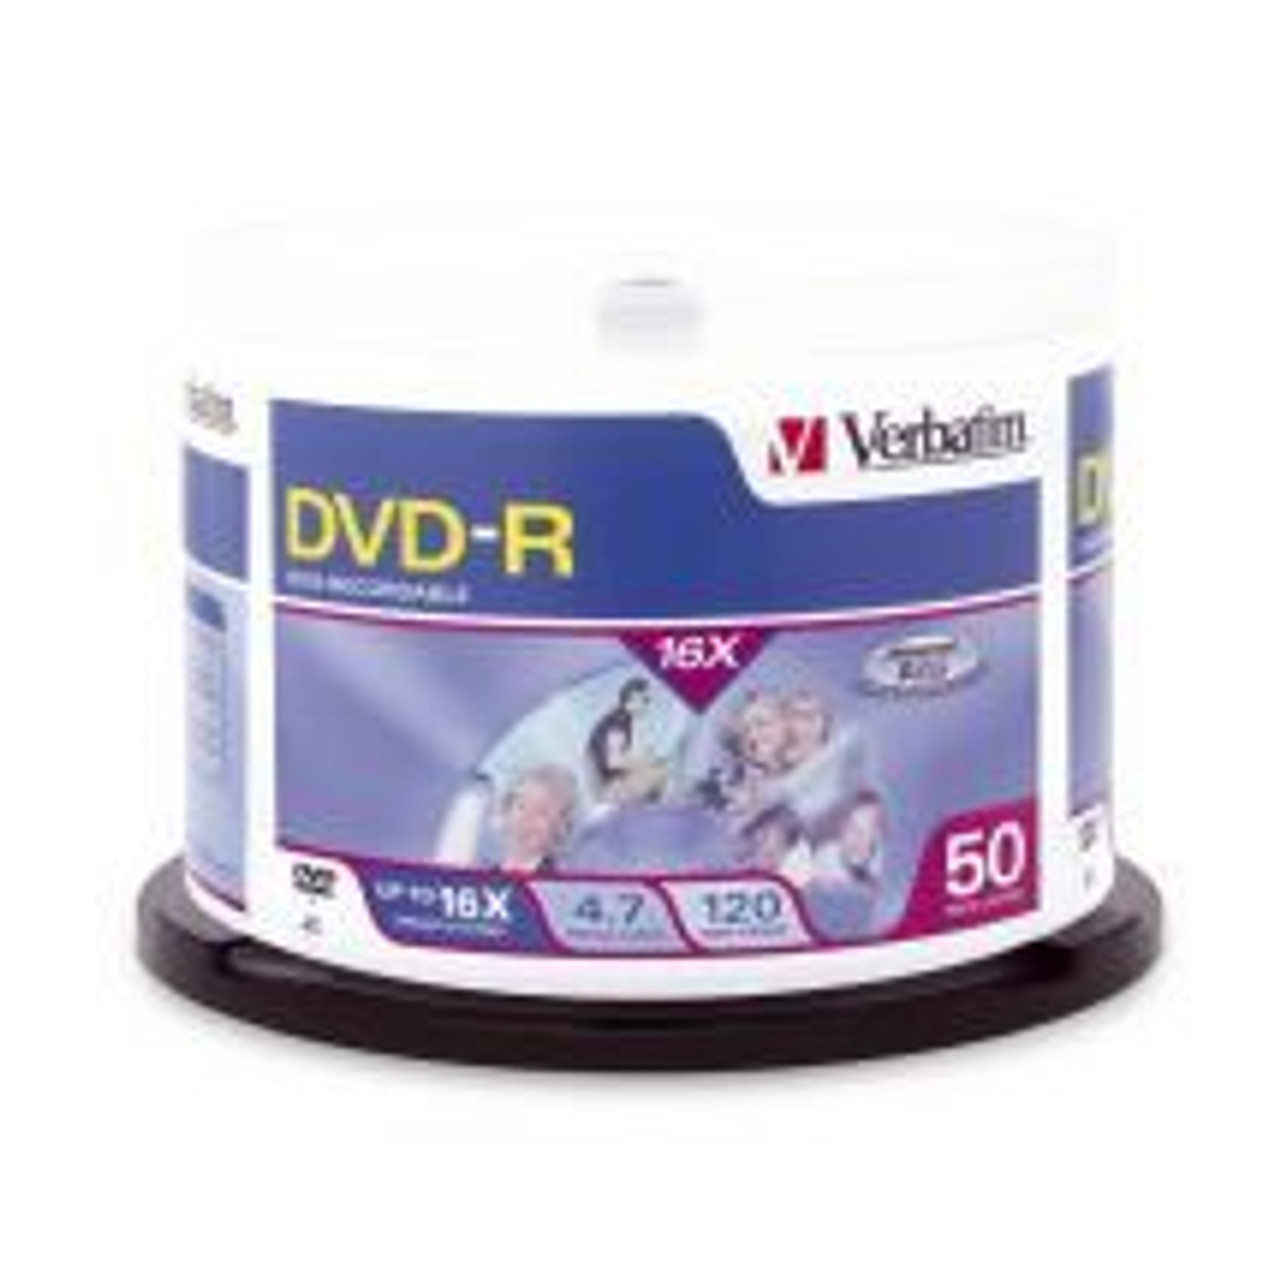 Product image for Verbatim DVD-R 4.7GB 16X 50pk 95101   CX Computer Superstore